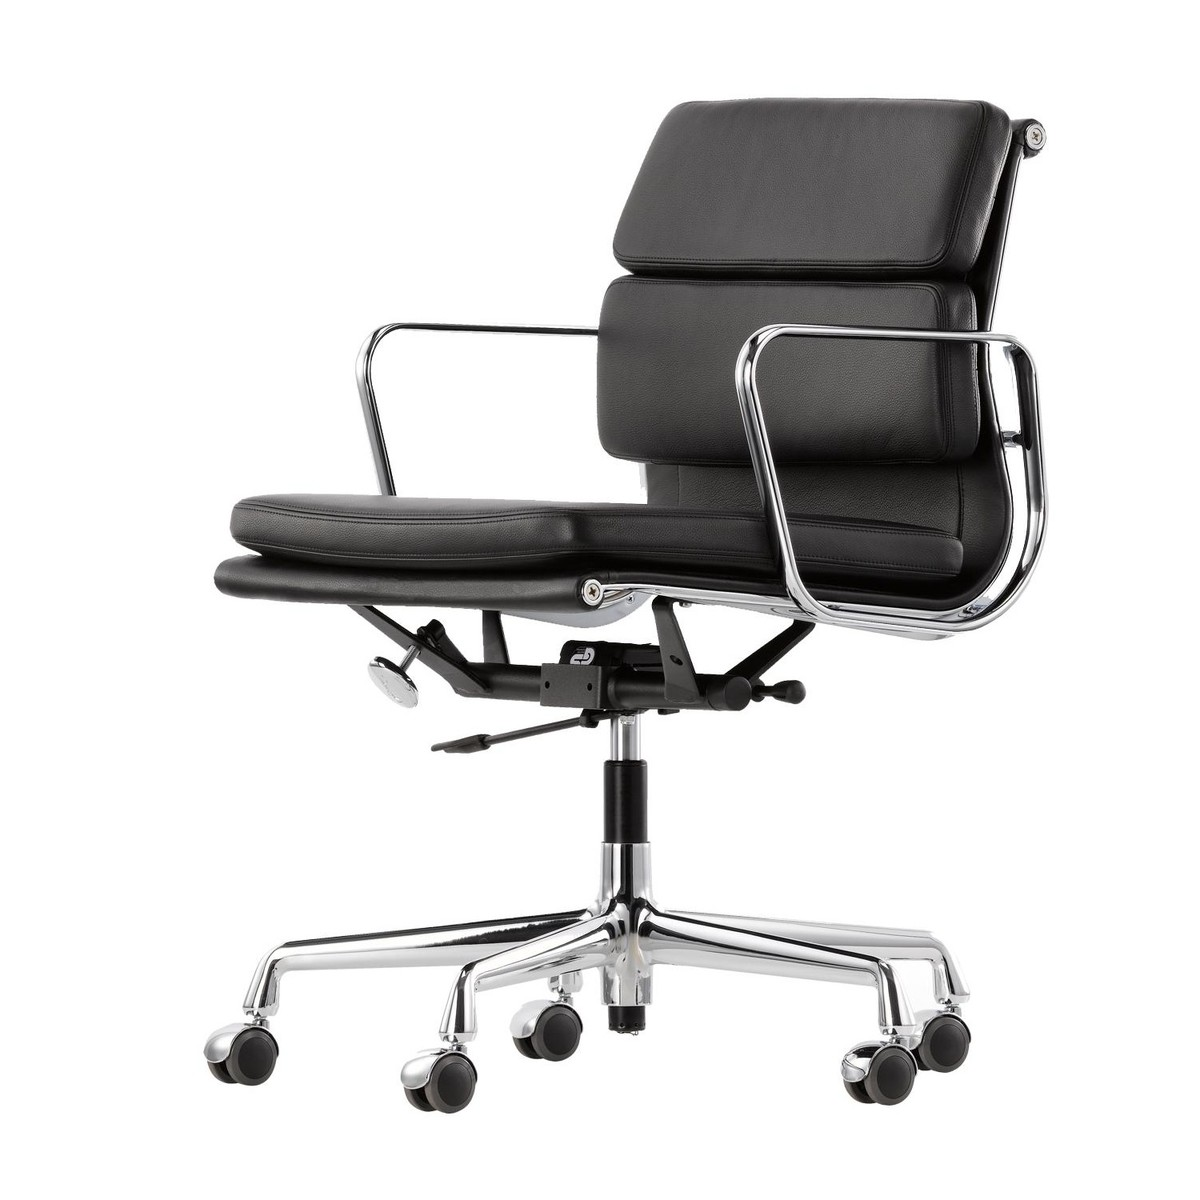 Ea 217 soft pad eames alu chair office chair vitra ambientedirect com